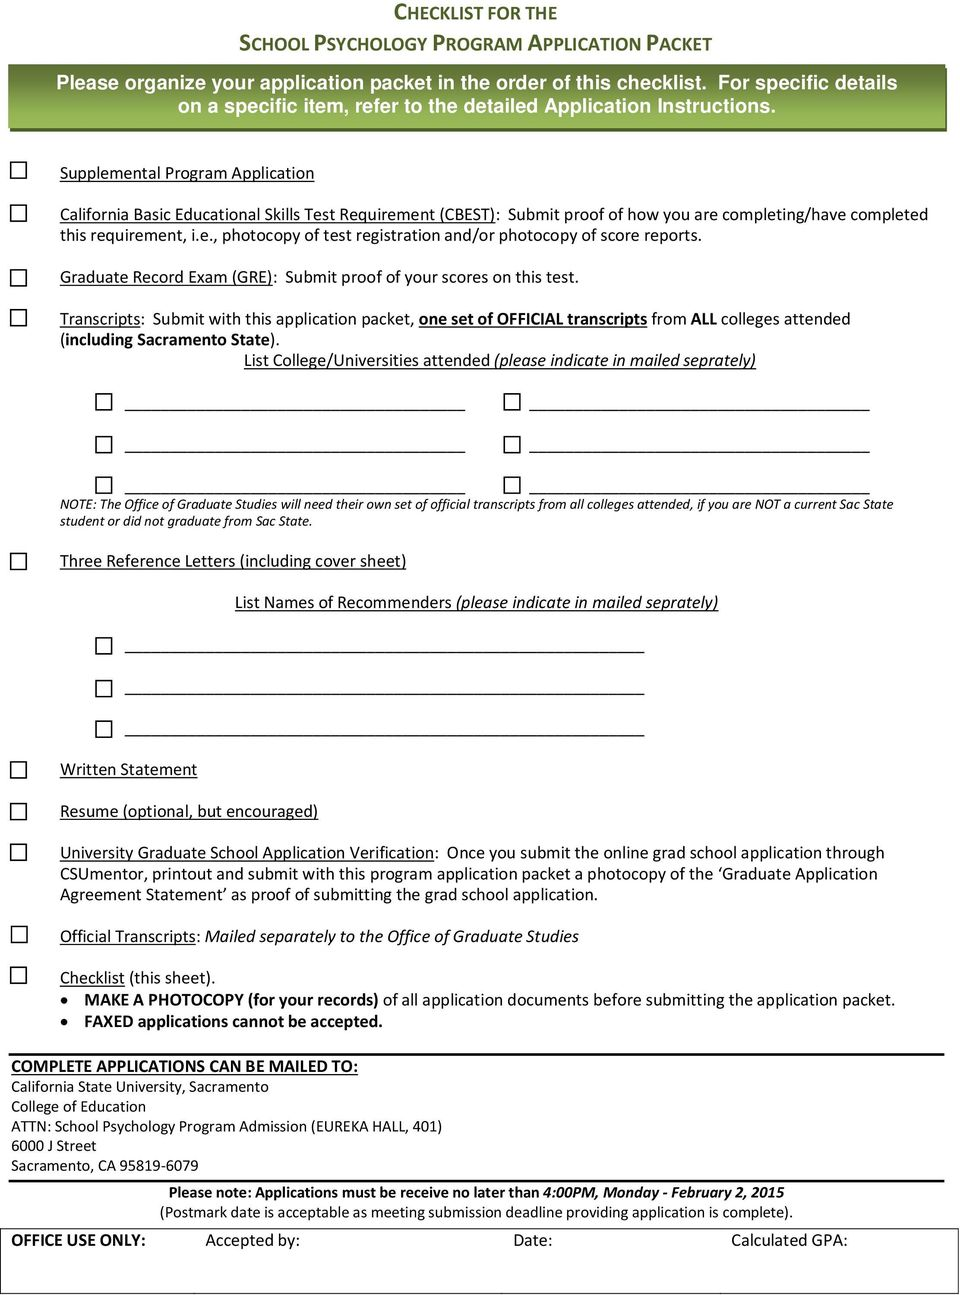 Supplemental Program Application California Basic Educational Skills Test Requirement (CBEST): Submit proof of how you are completing/have completed this requirement, i.e., photocopy of test registration and/or photocopy of score reports.